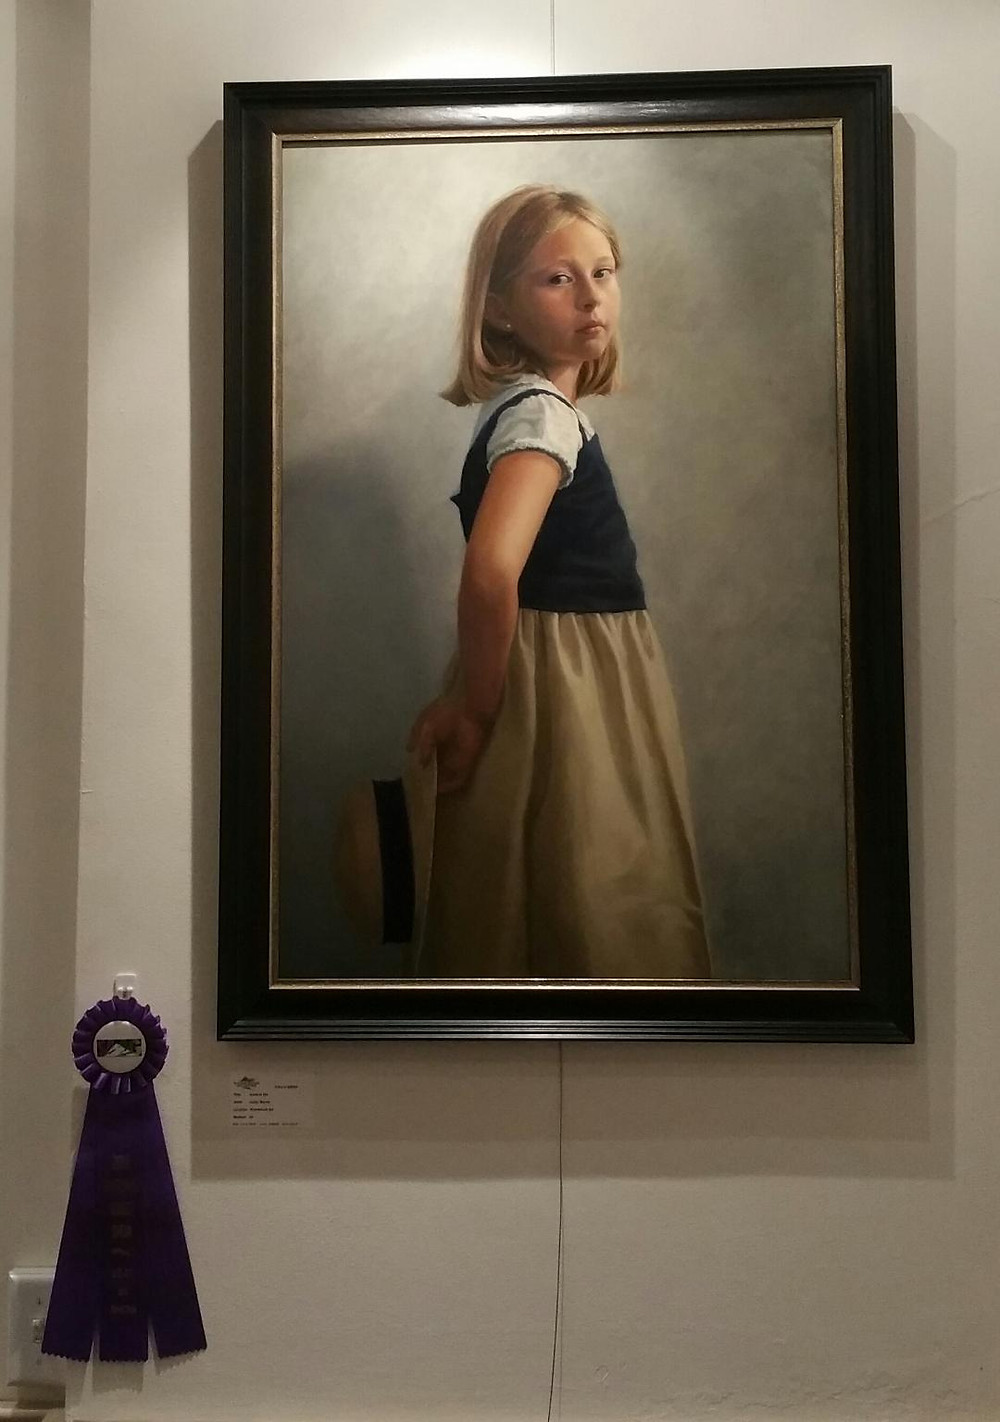 """""""Good to me"""" by Kathy Morris. Best in Show."""